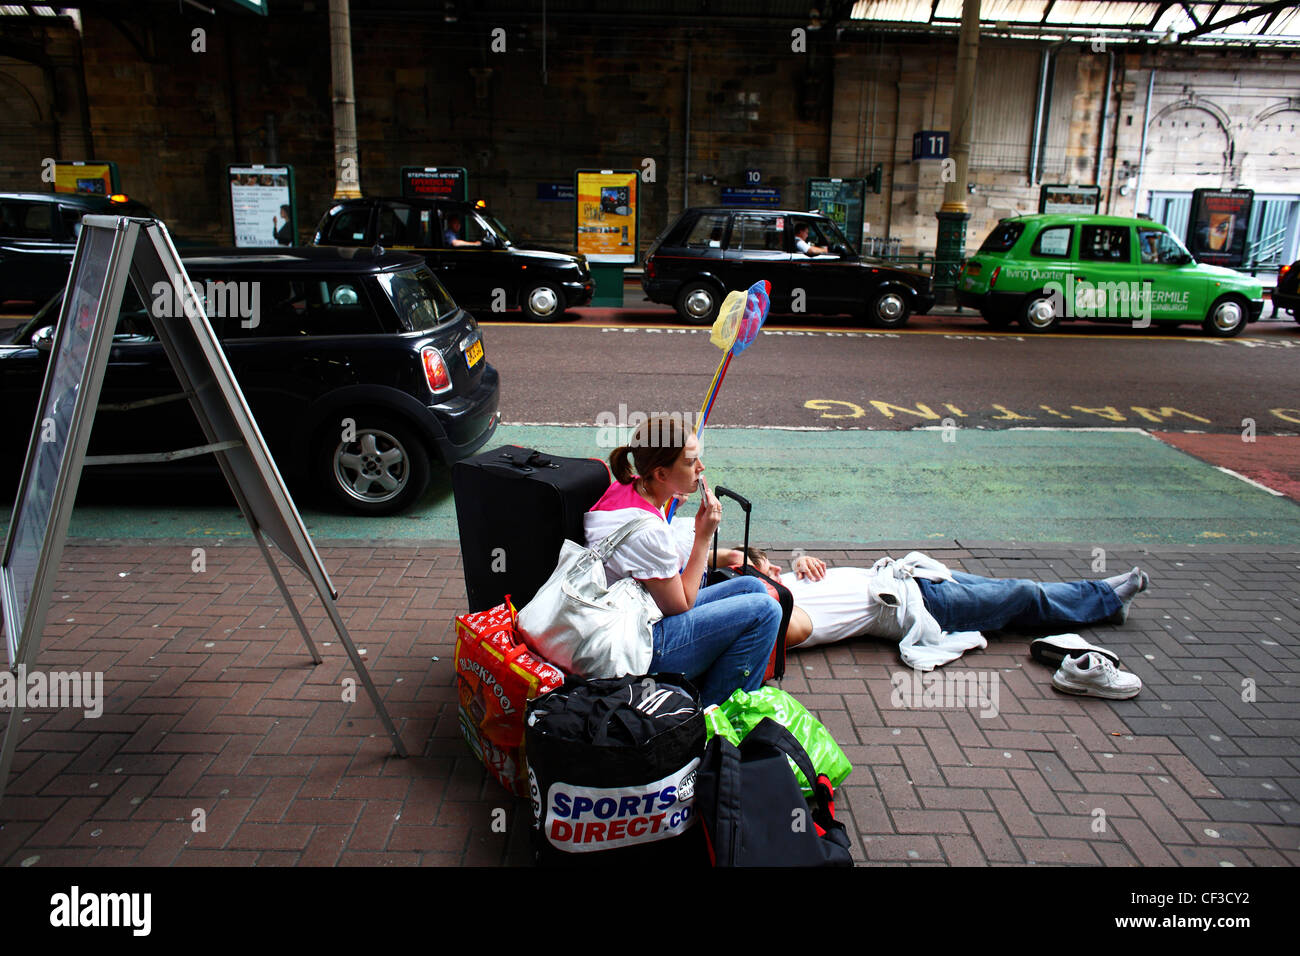 Travellers in transit outside Waverley Station. - Stock Image